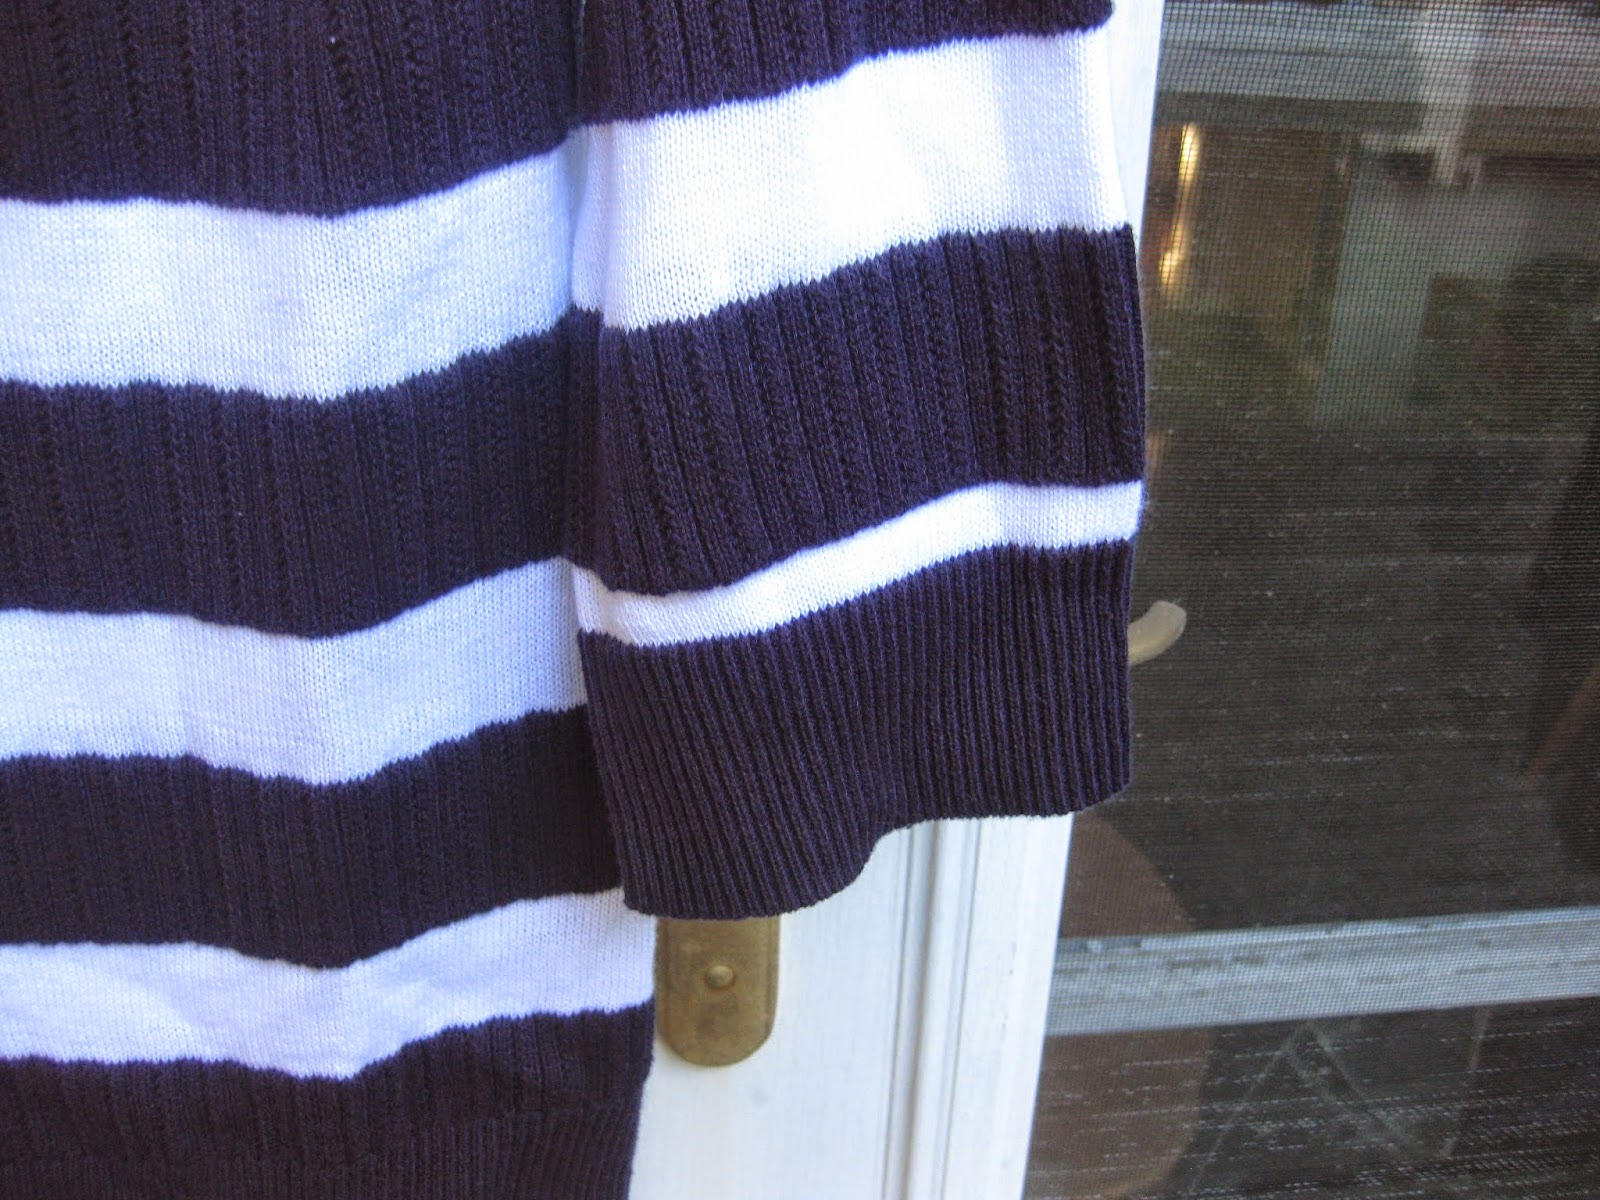 Black and White Stripped Croft & Barrow Sweater in Size Small